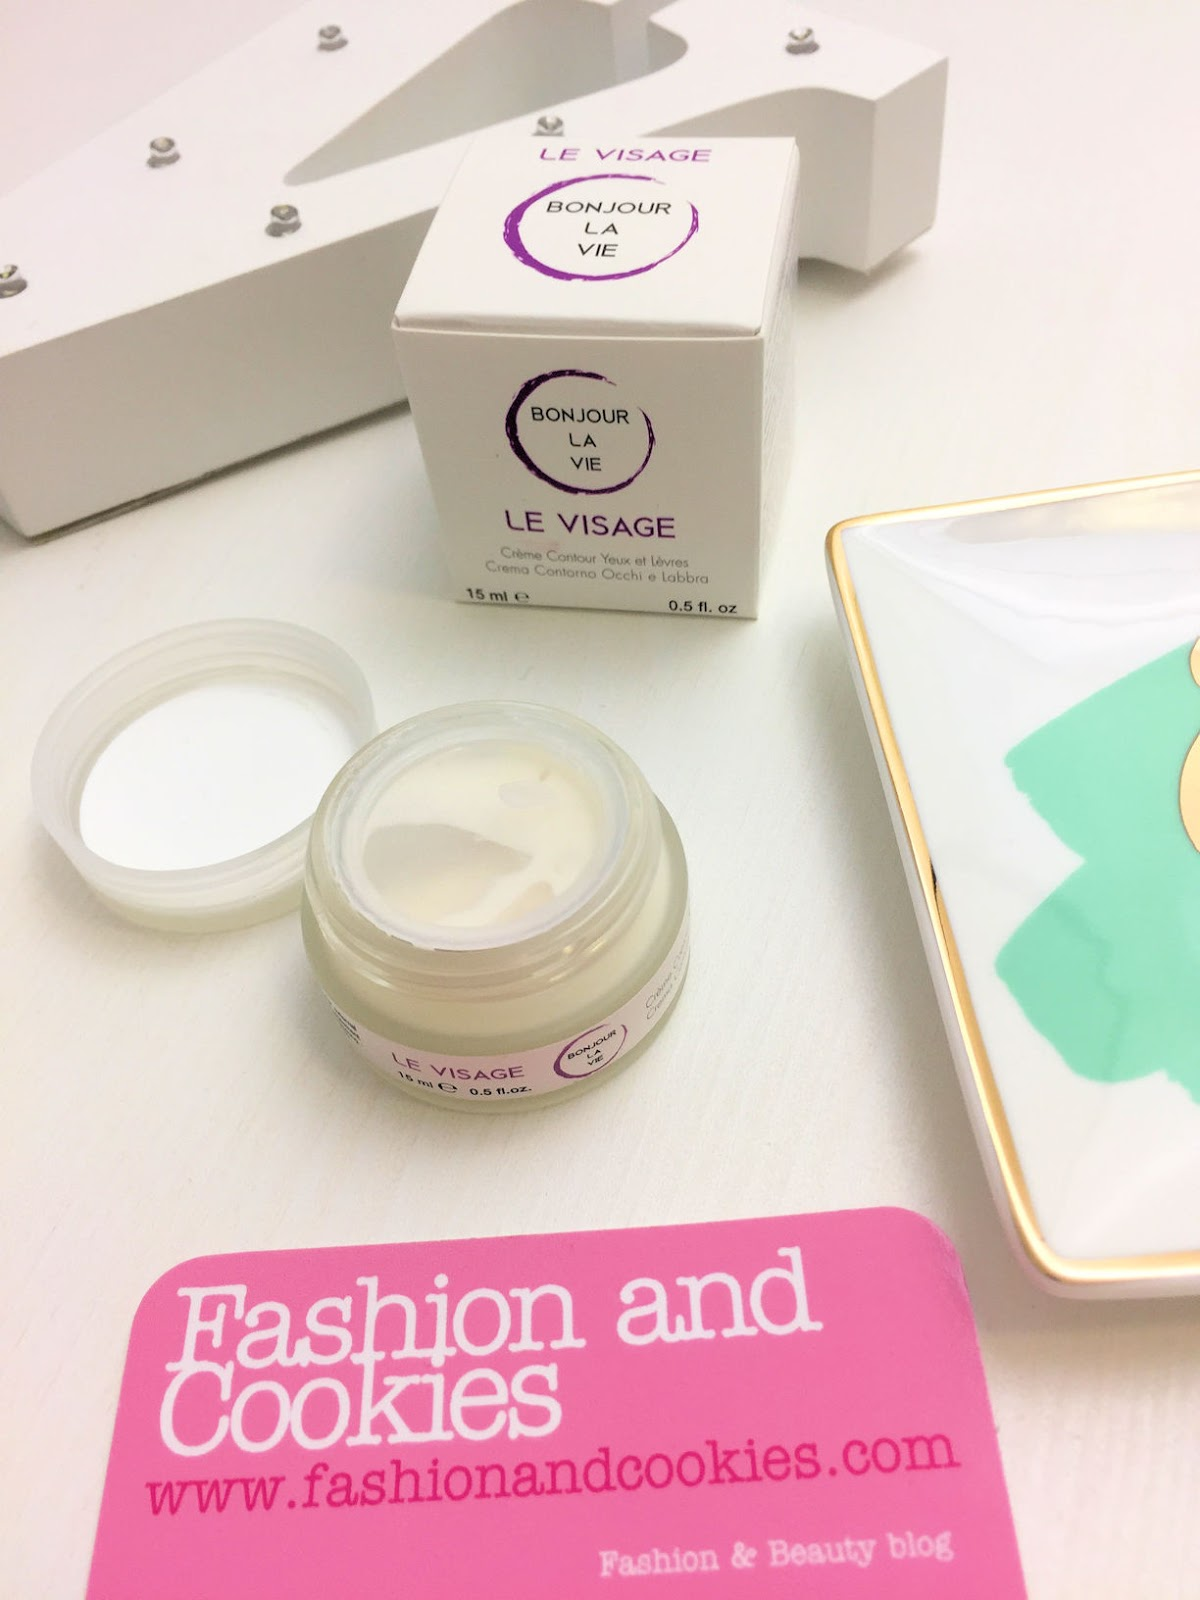 Bonjour la vie crema contorno occhi e labbra su Fashion and Cookies beauty blog, beauty blogger